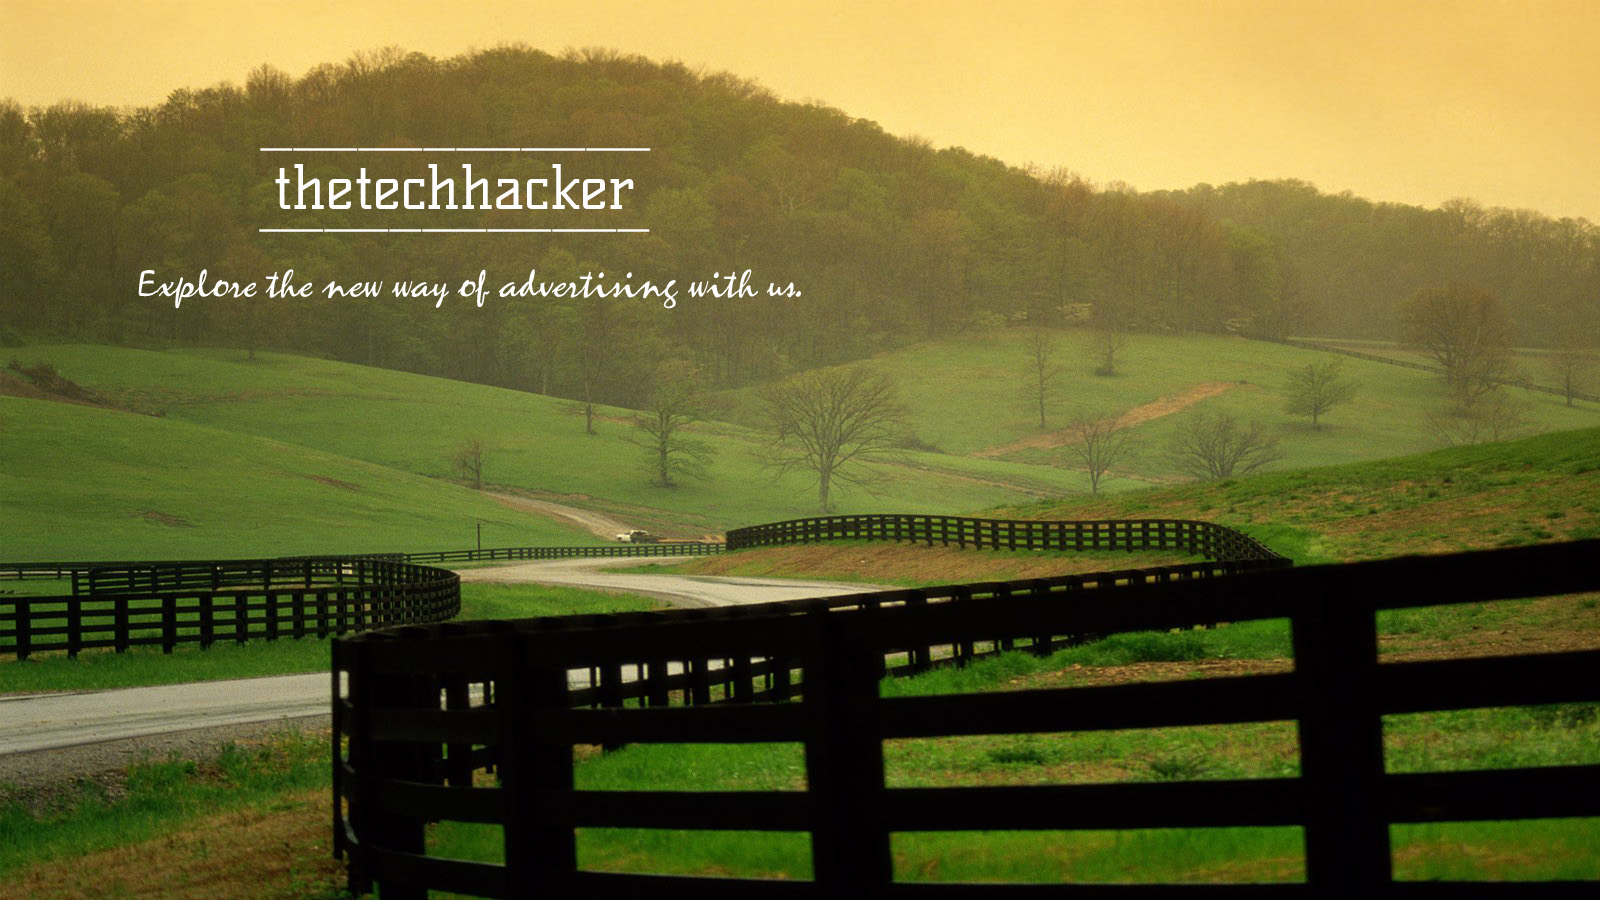 Explore New Ways of Advertising on thetechhacker